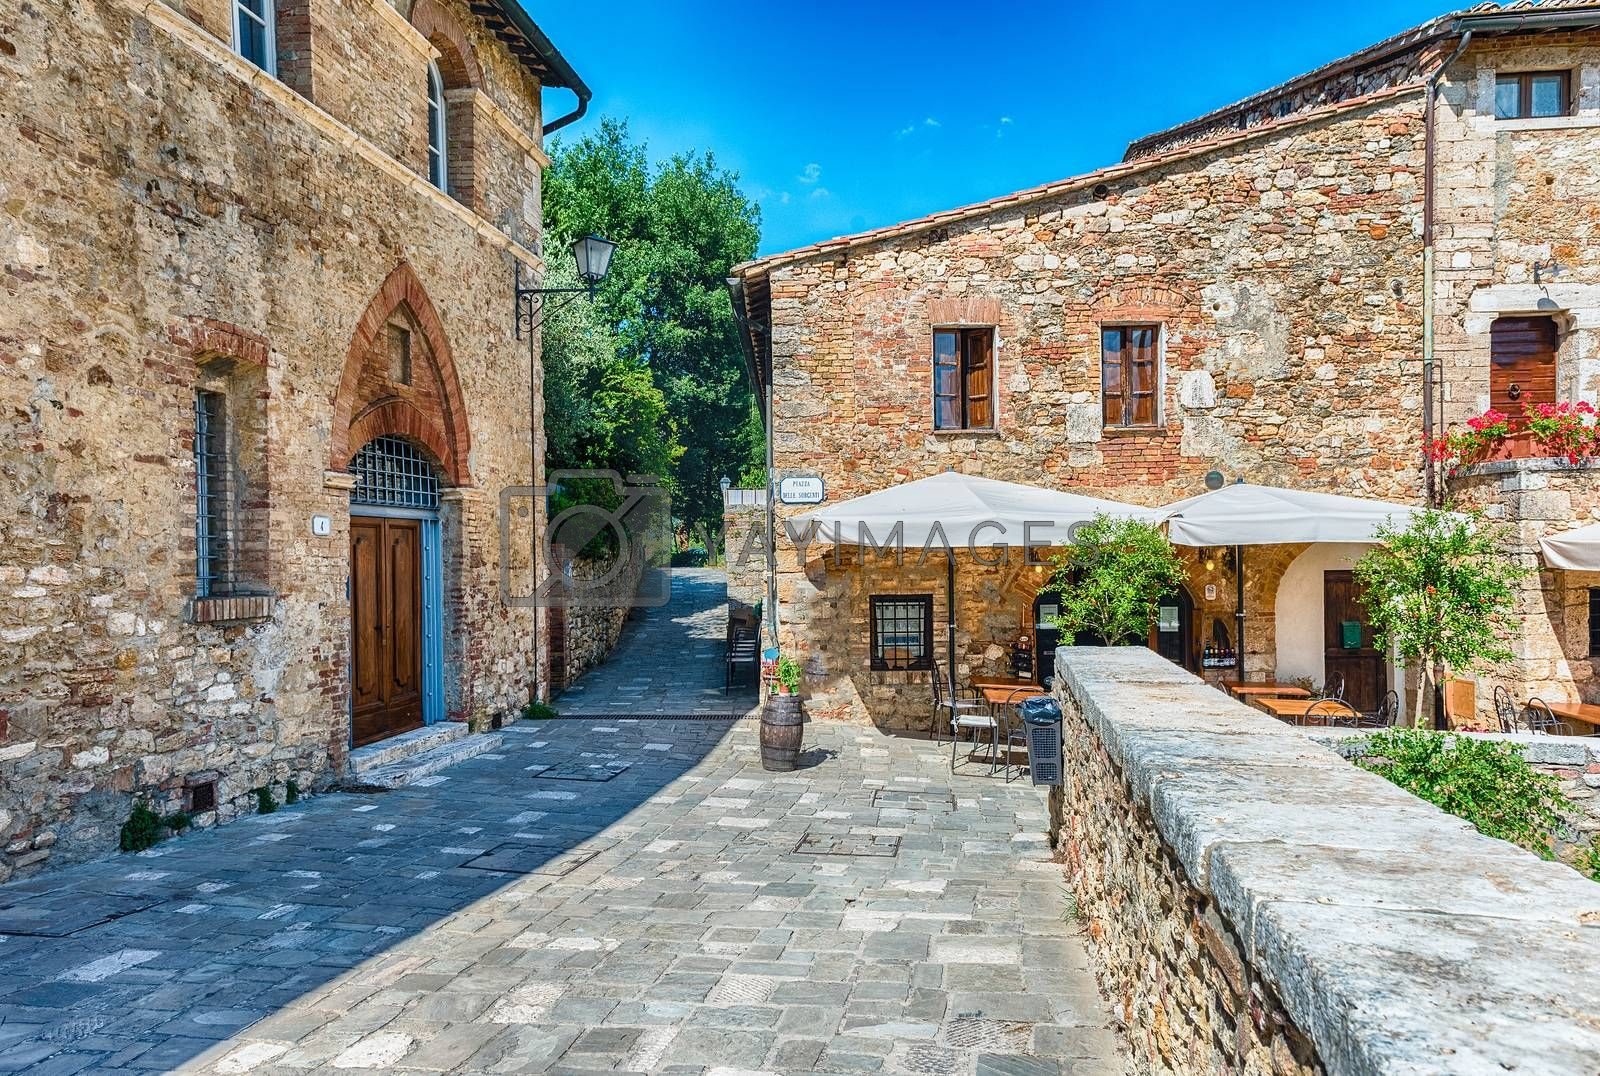 Picturesque medieval buildings in Bagno Vignoni, scenic village in the province of Siena, Tuscany, Italy